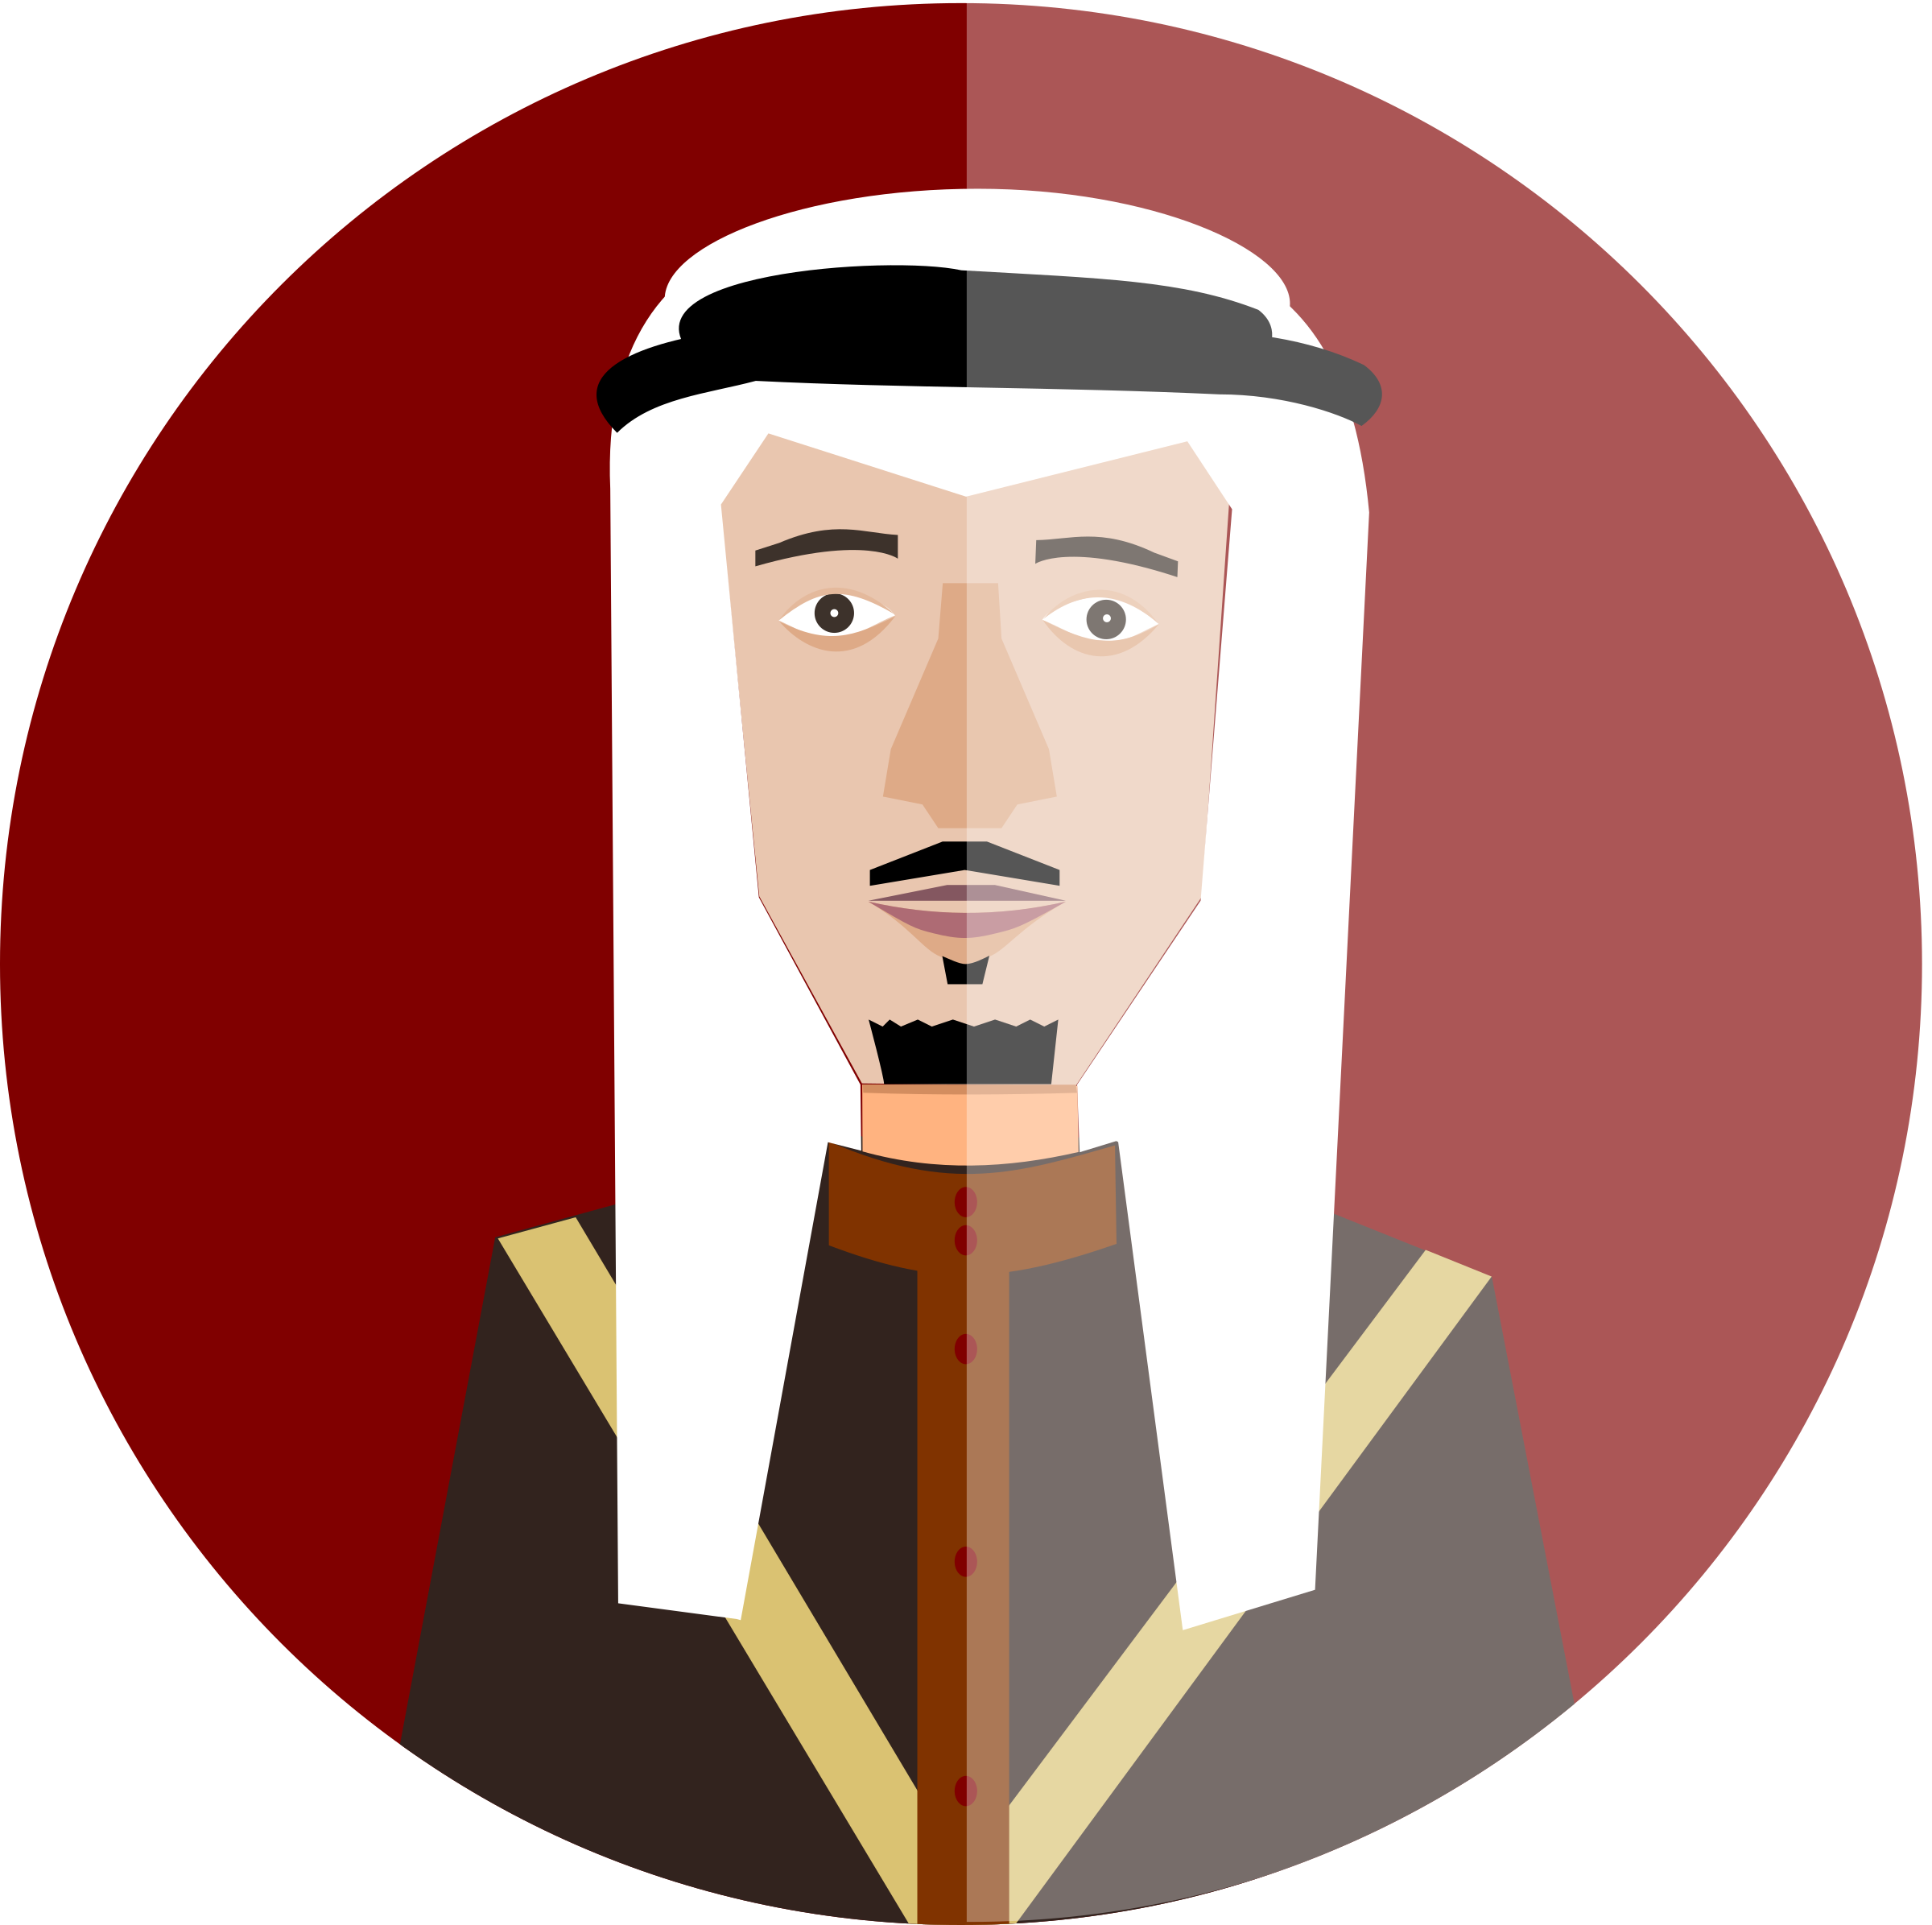 King Abdullah of Saudi Arabia by logoscambodia